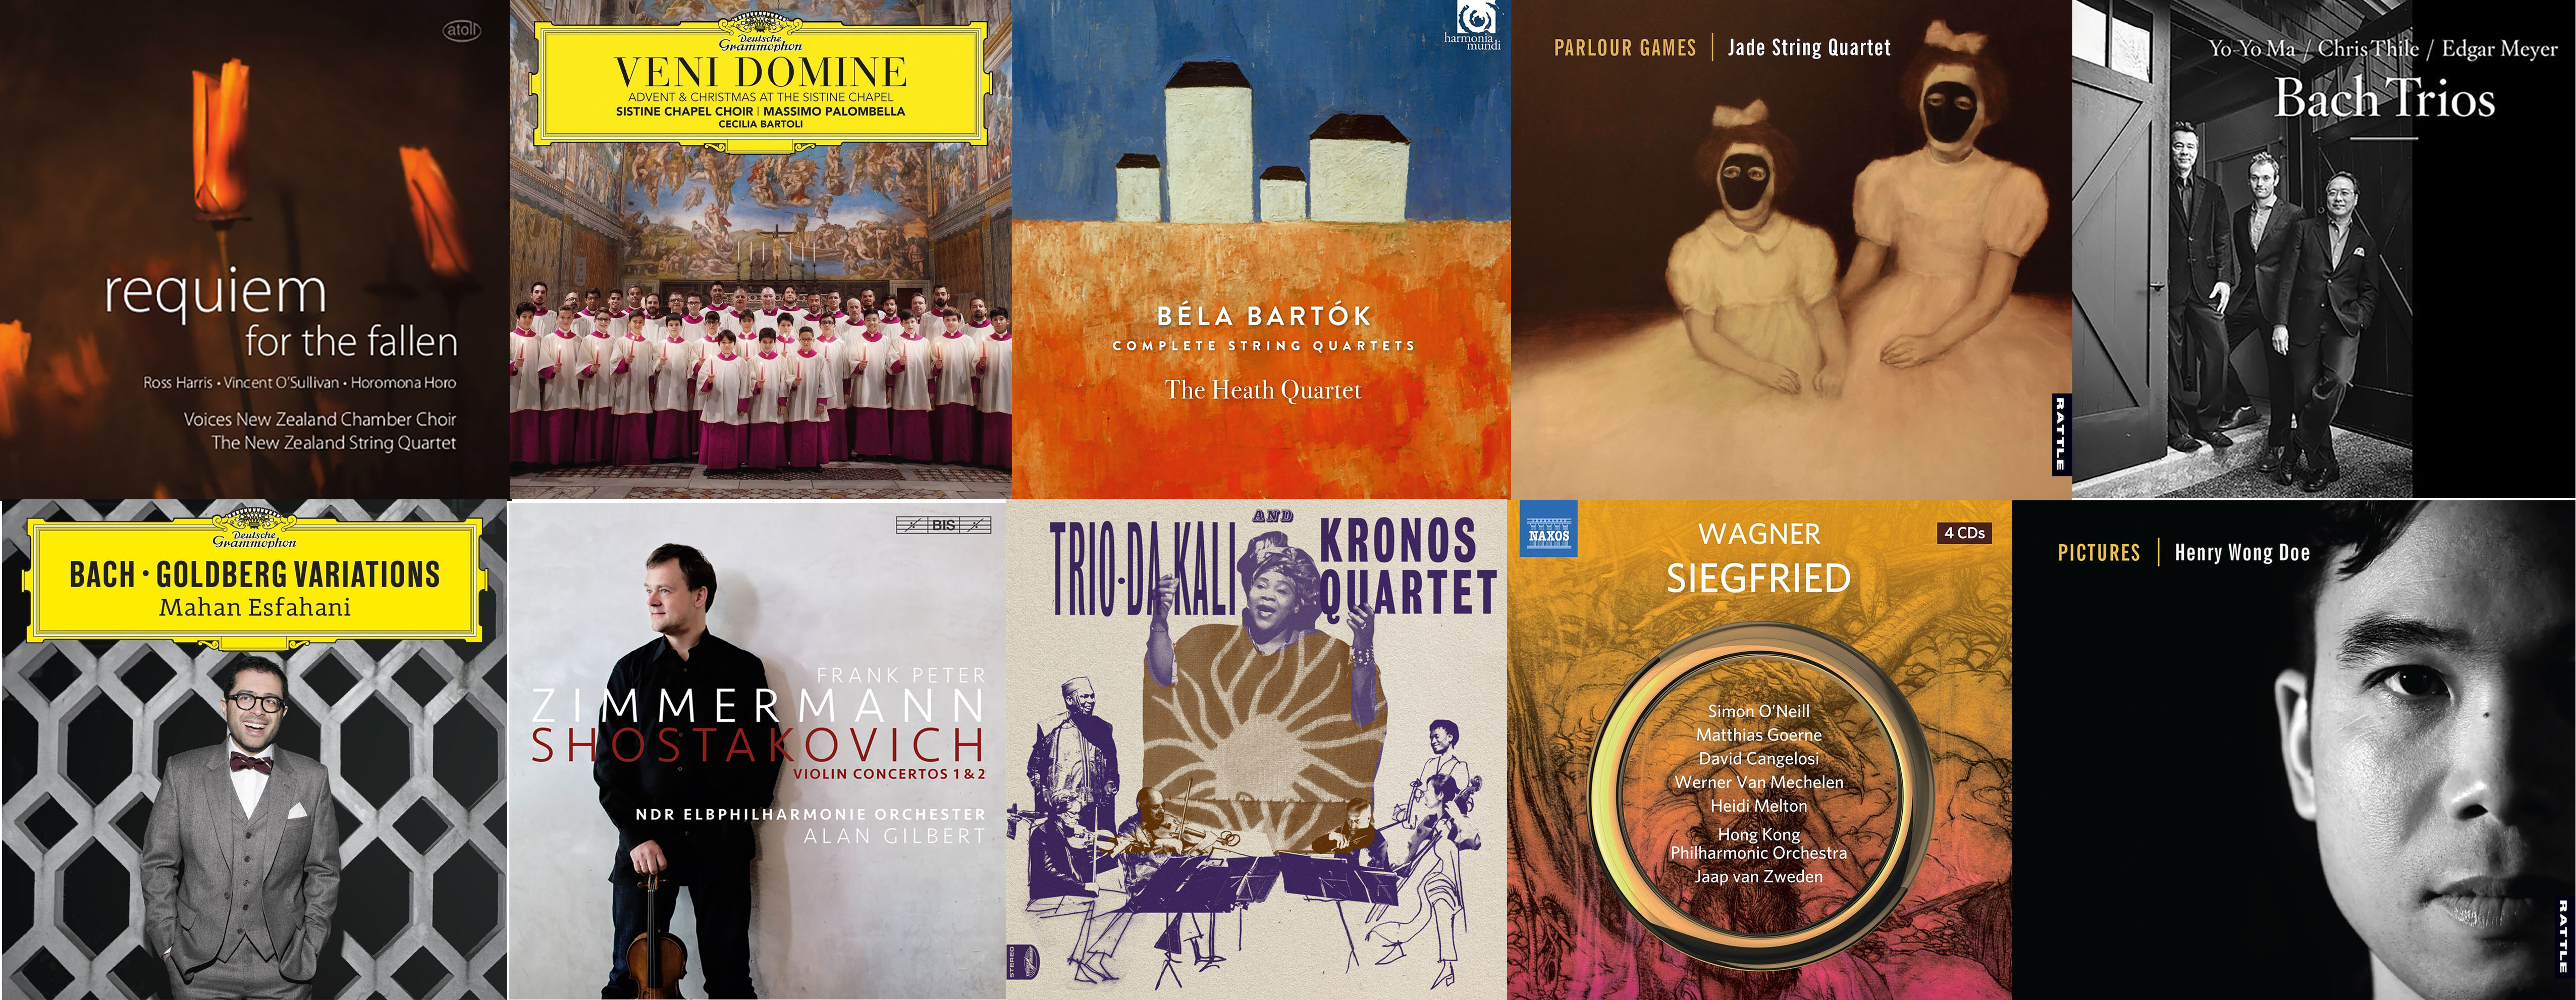 Sounds of Christmas: William Dart picks his top 10 classical CDs of